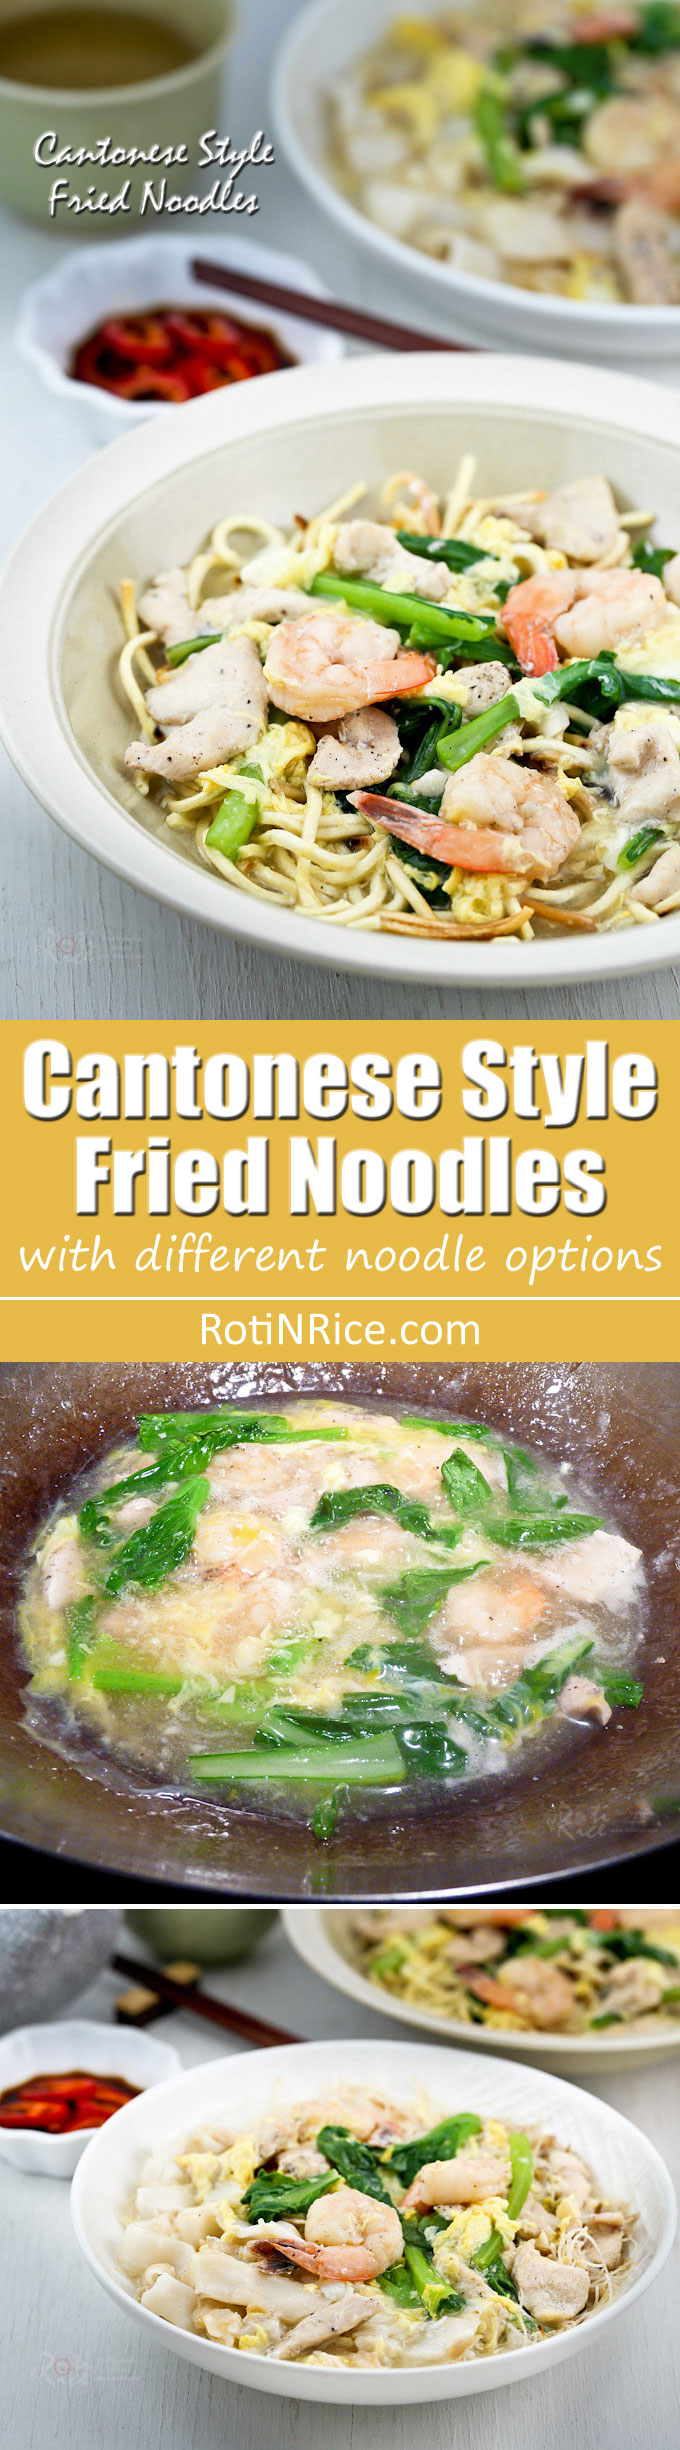 Delicious Cantonese Style Fried Noodles with a smooth egg-based sauce. Your choice of dried egg noodles, rice noodles, or a combination of the two. | RotiNRice.com